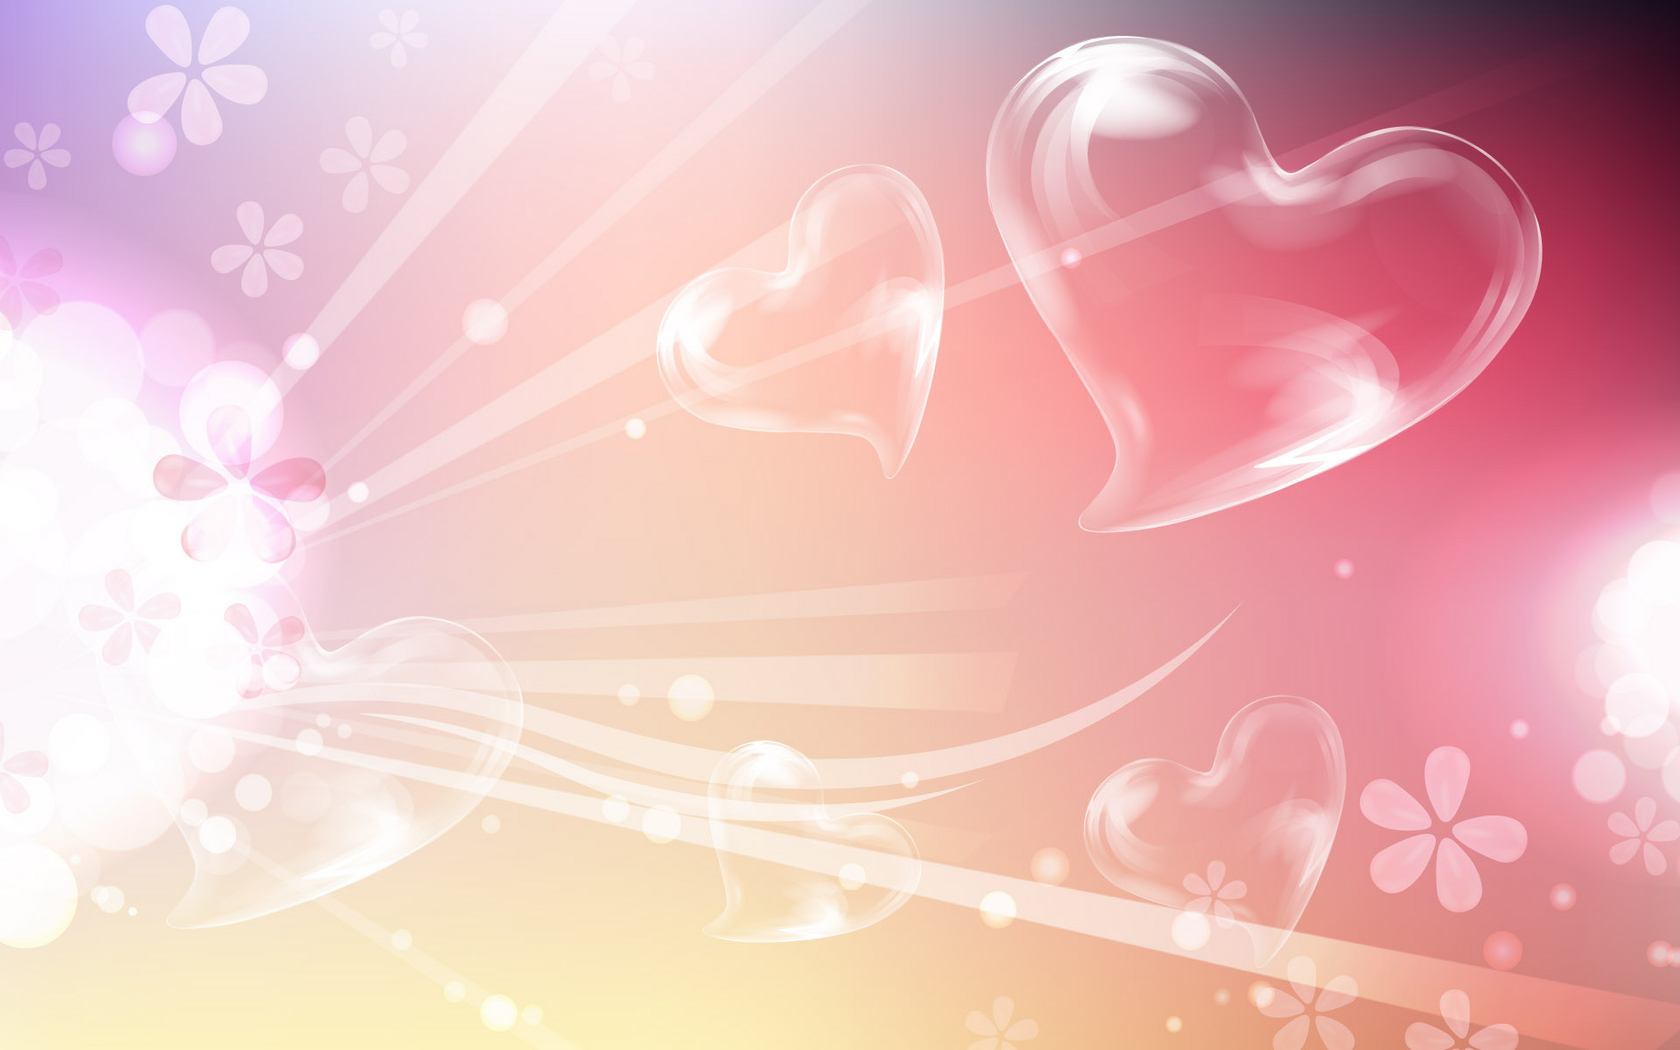 Love wallpapers hd, amor fondos de pantalla, love 3D